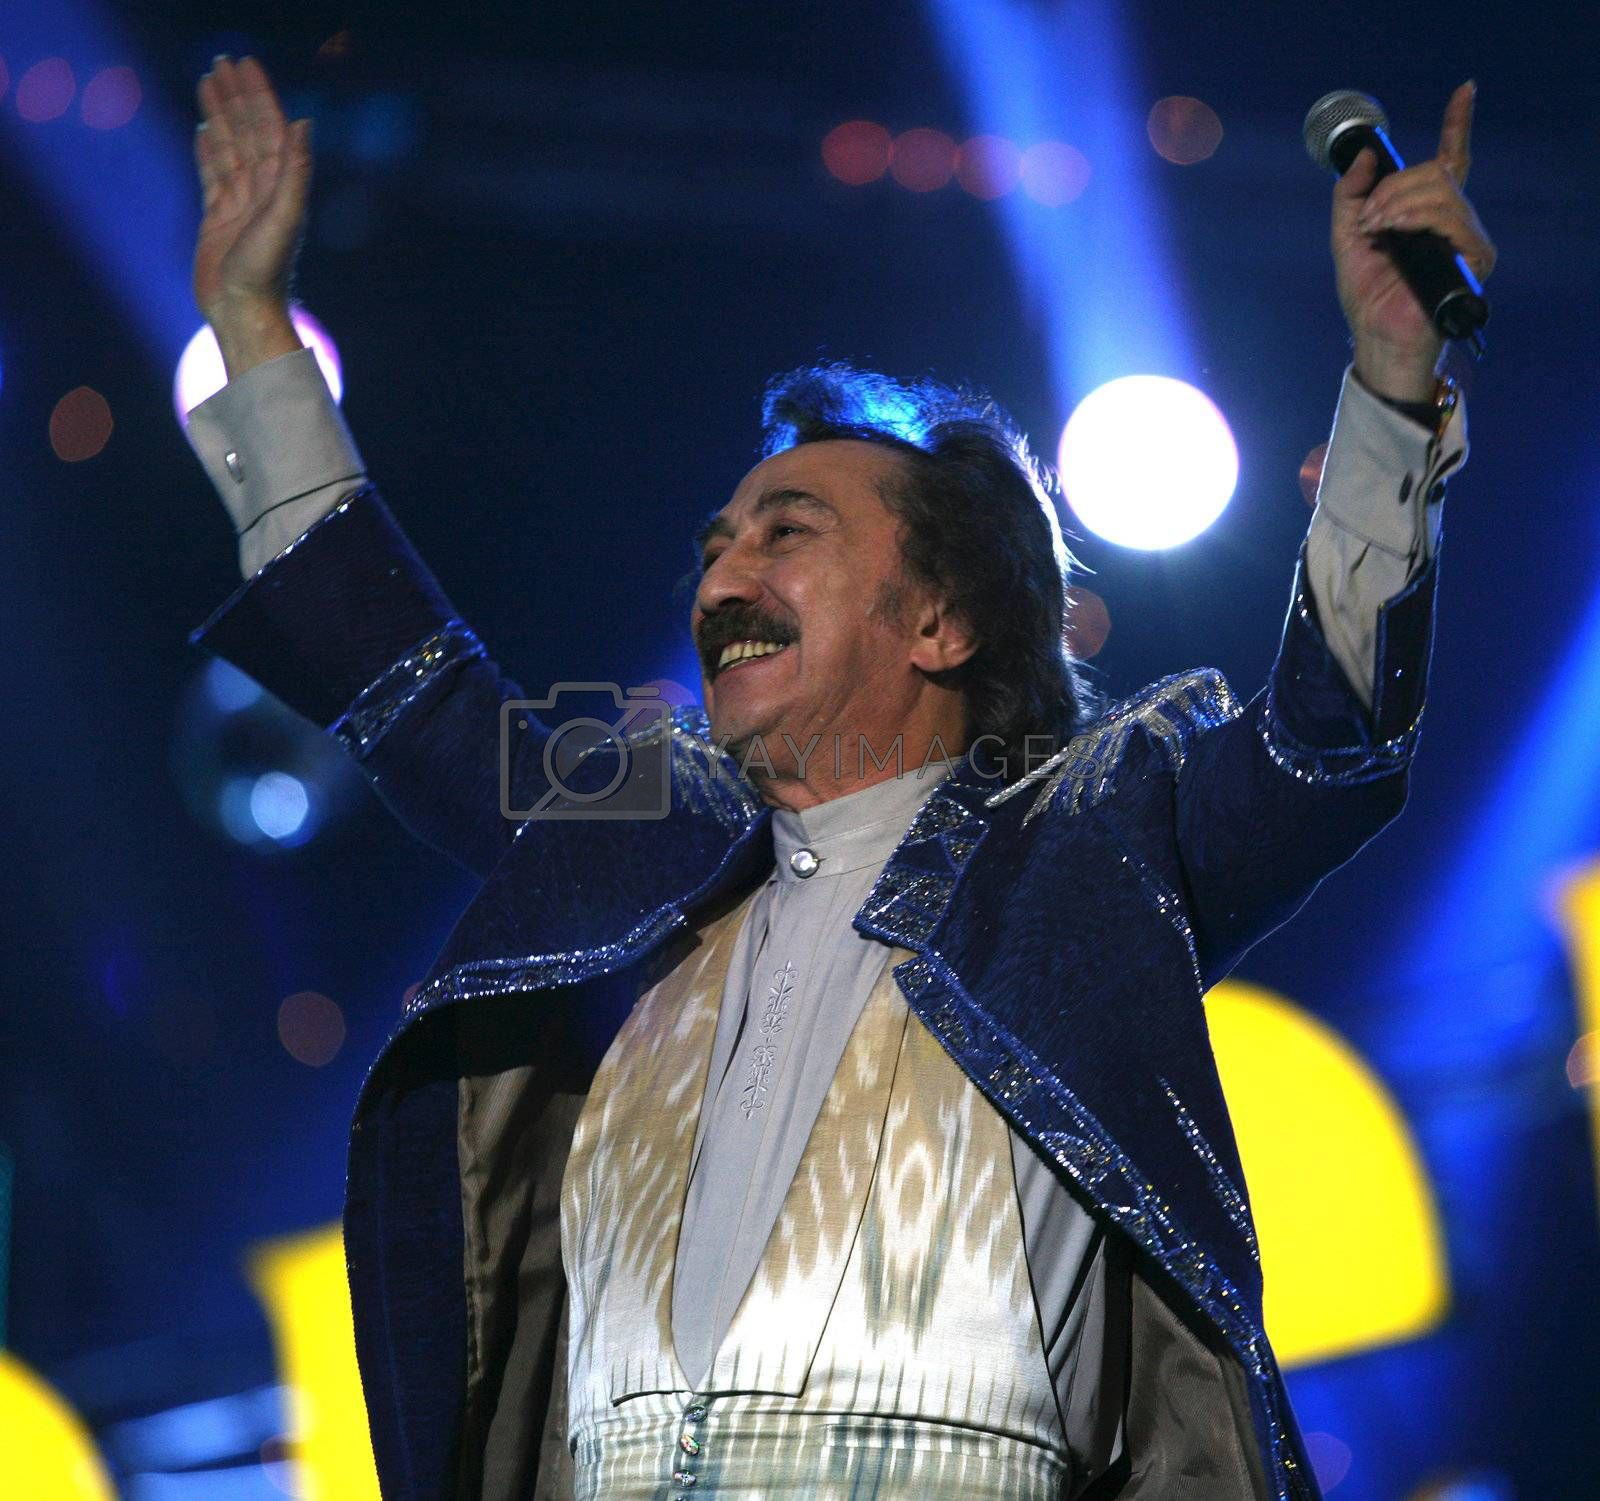 Russian singer Farukh Zakirov by friday